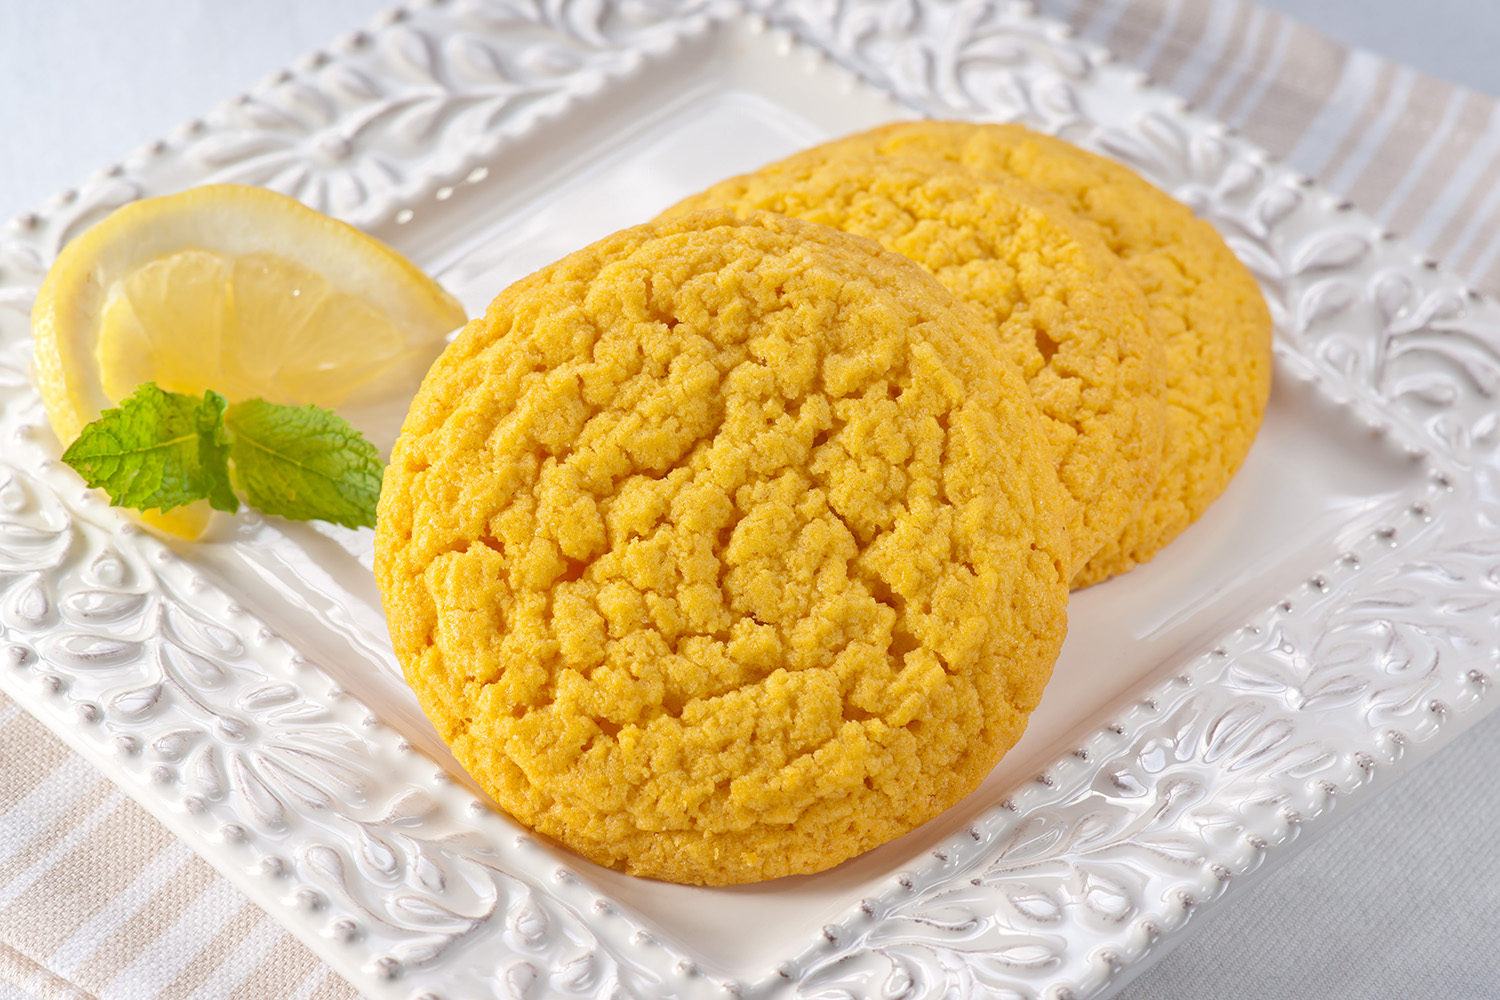 Lemon - These delicious cookies are light and fluffy with an added touch of lemon. This all-time summer favorite is a great treat for a picnic lunch or a pool-side snack, and is sure to satisfy any sweet tooth.